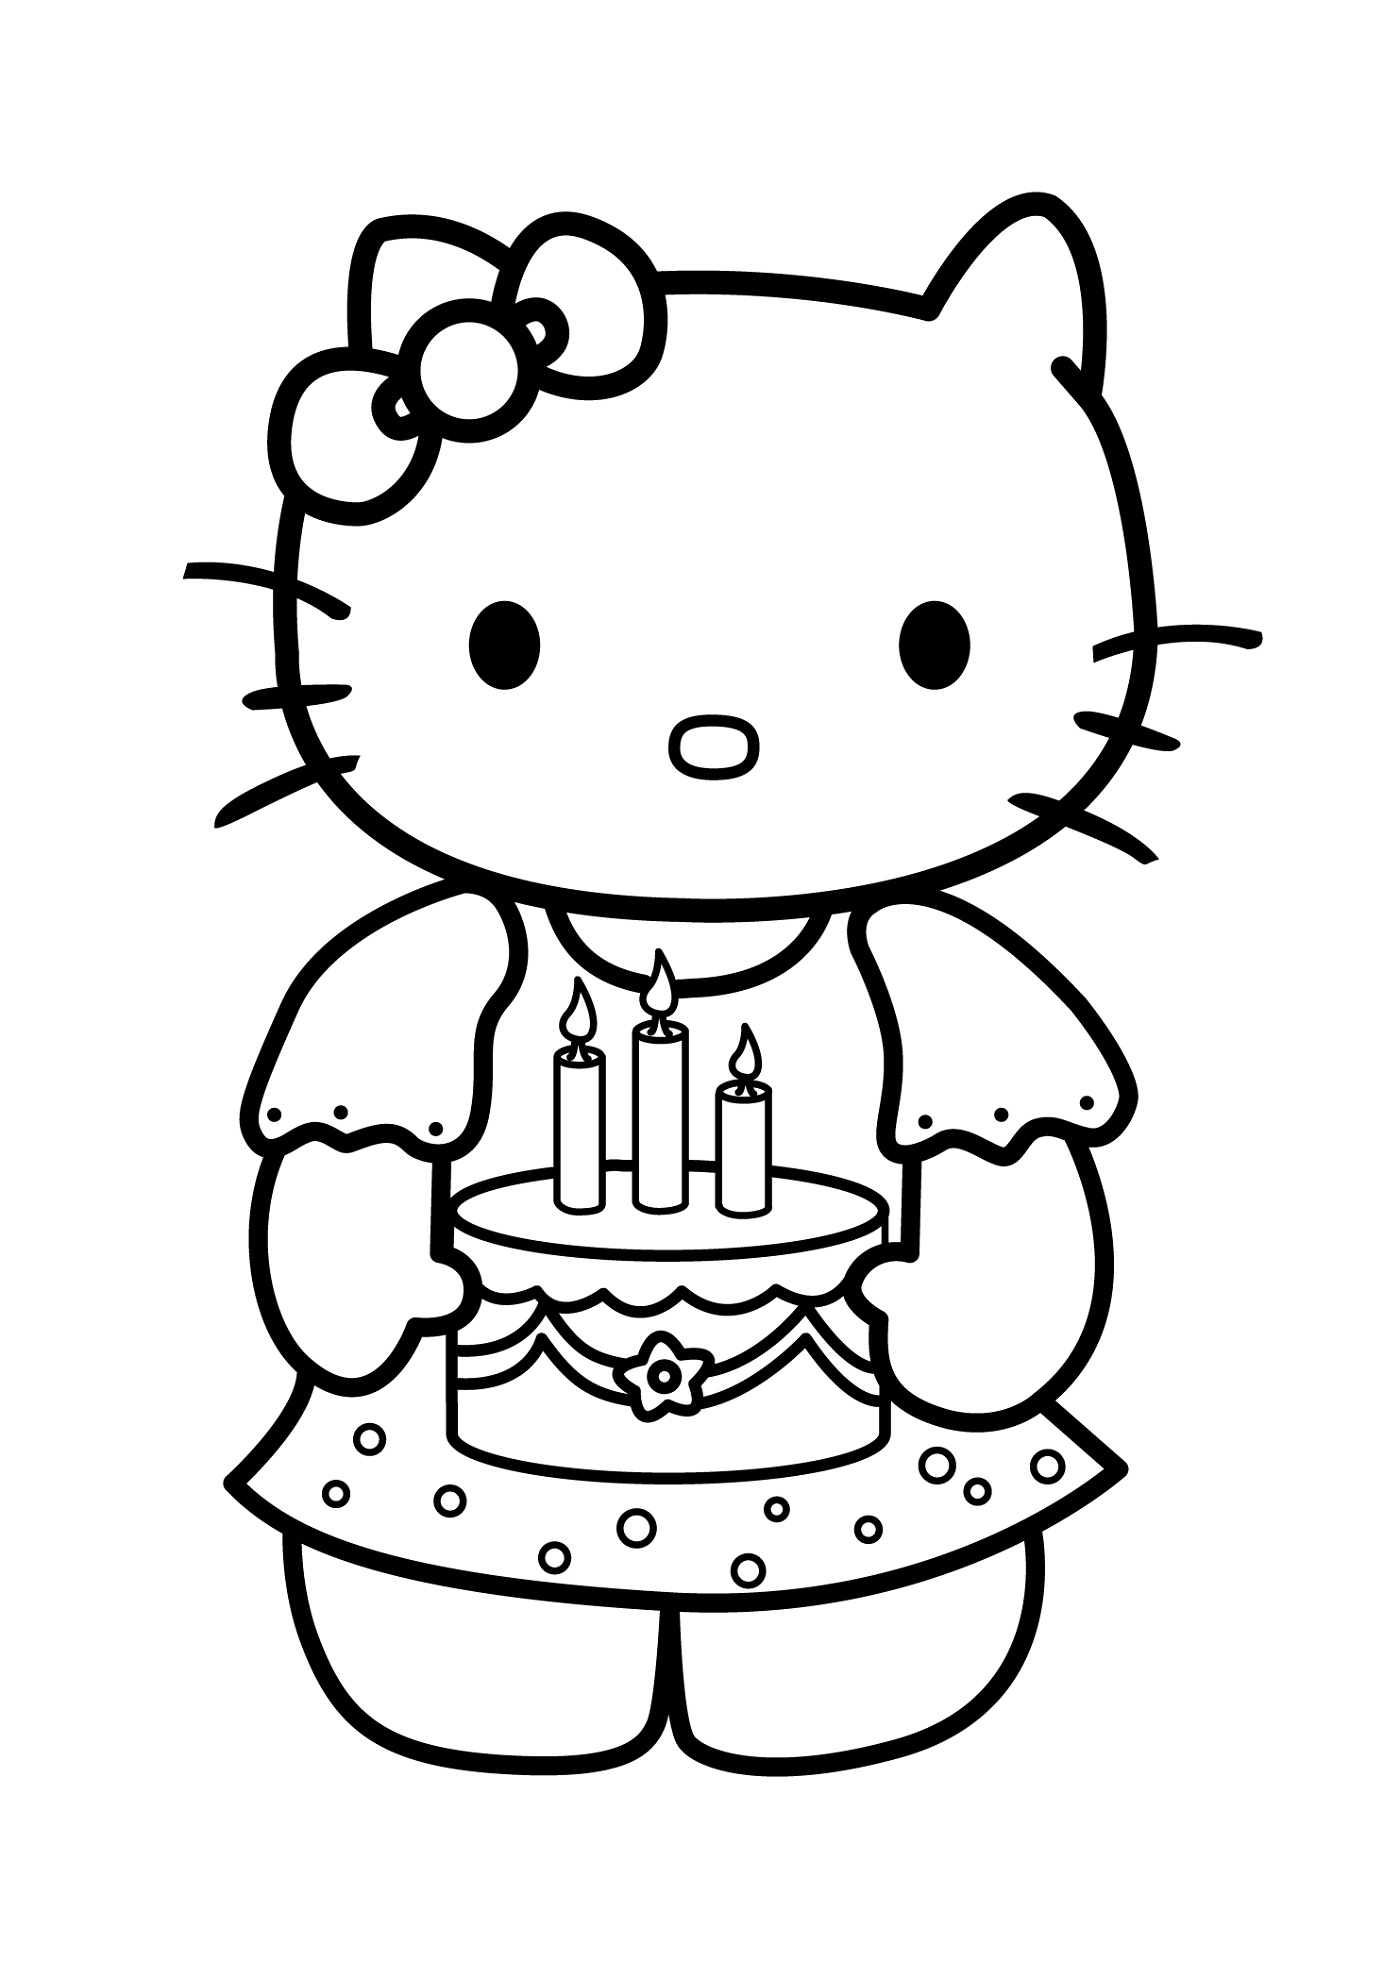 cat to color meowing kitten coloring page free printable coloring pages cat color to